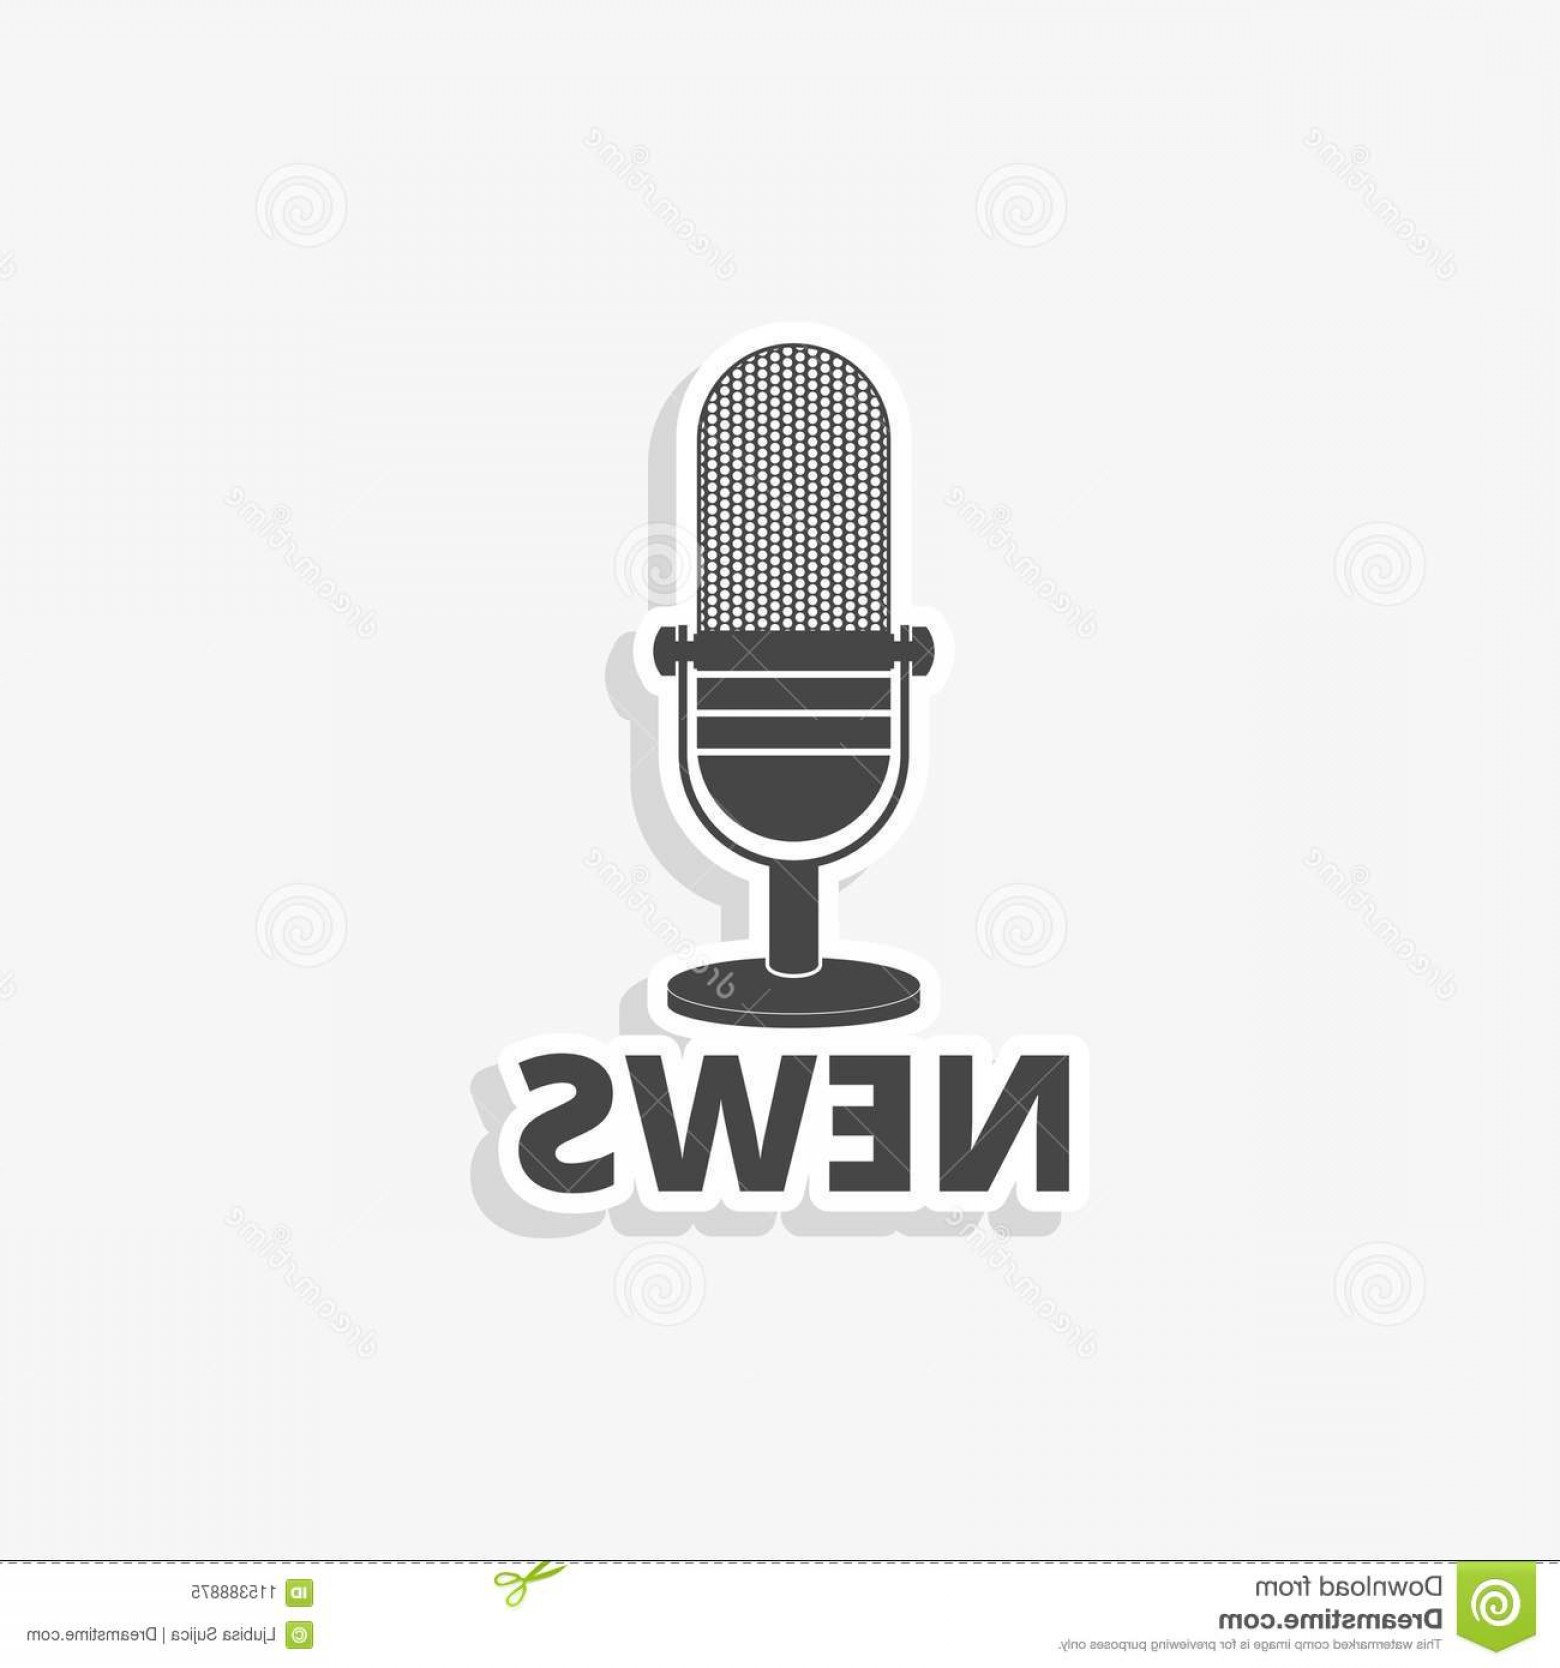 News Microphone Icon Vector: News Microphone Sticker News Microphone Icon Simple Vector Icon News Microphone Sticker News Microphone Icon Simple Vector Icon Image